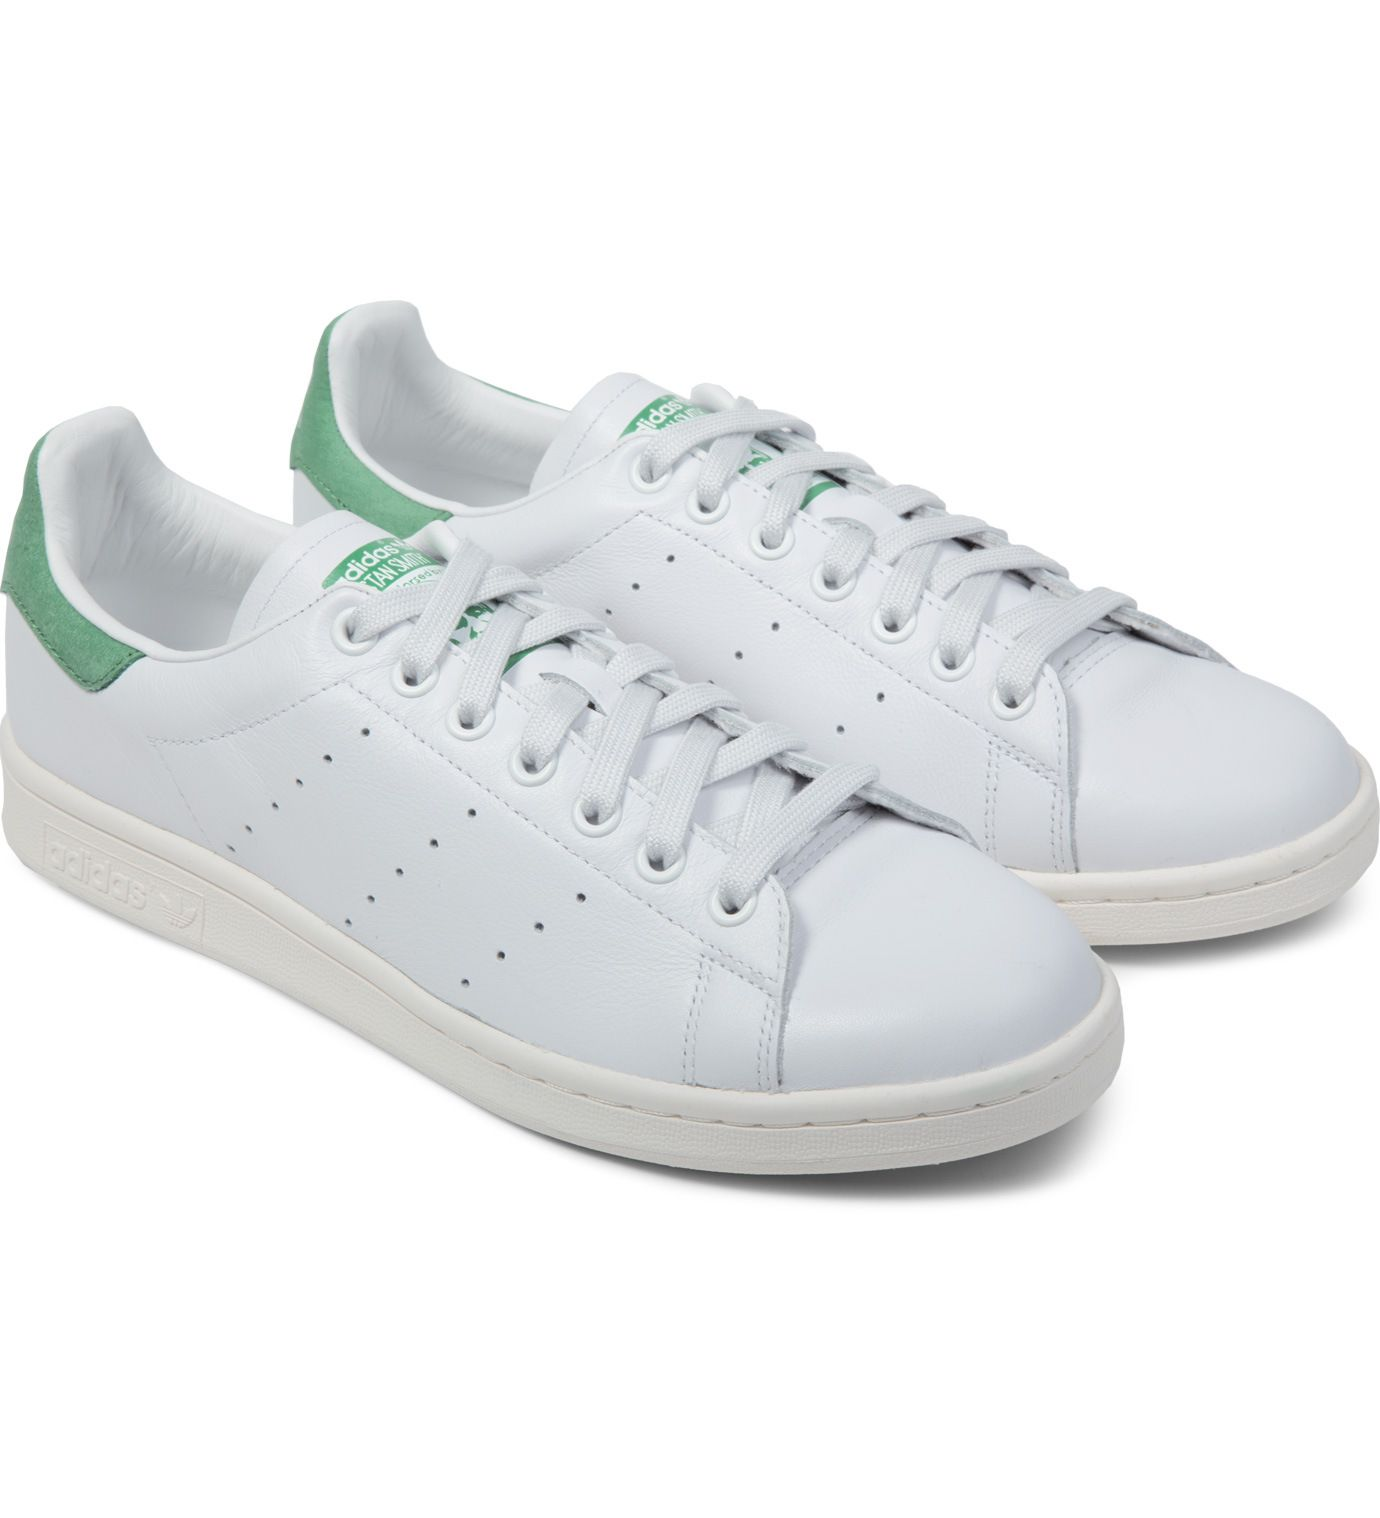 WhiteGreen Stan Smith D67361 Shoes | Cool Shoes !! | Shoes